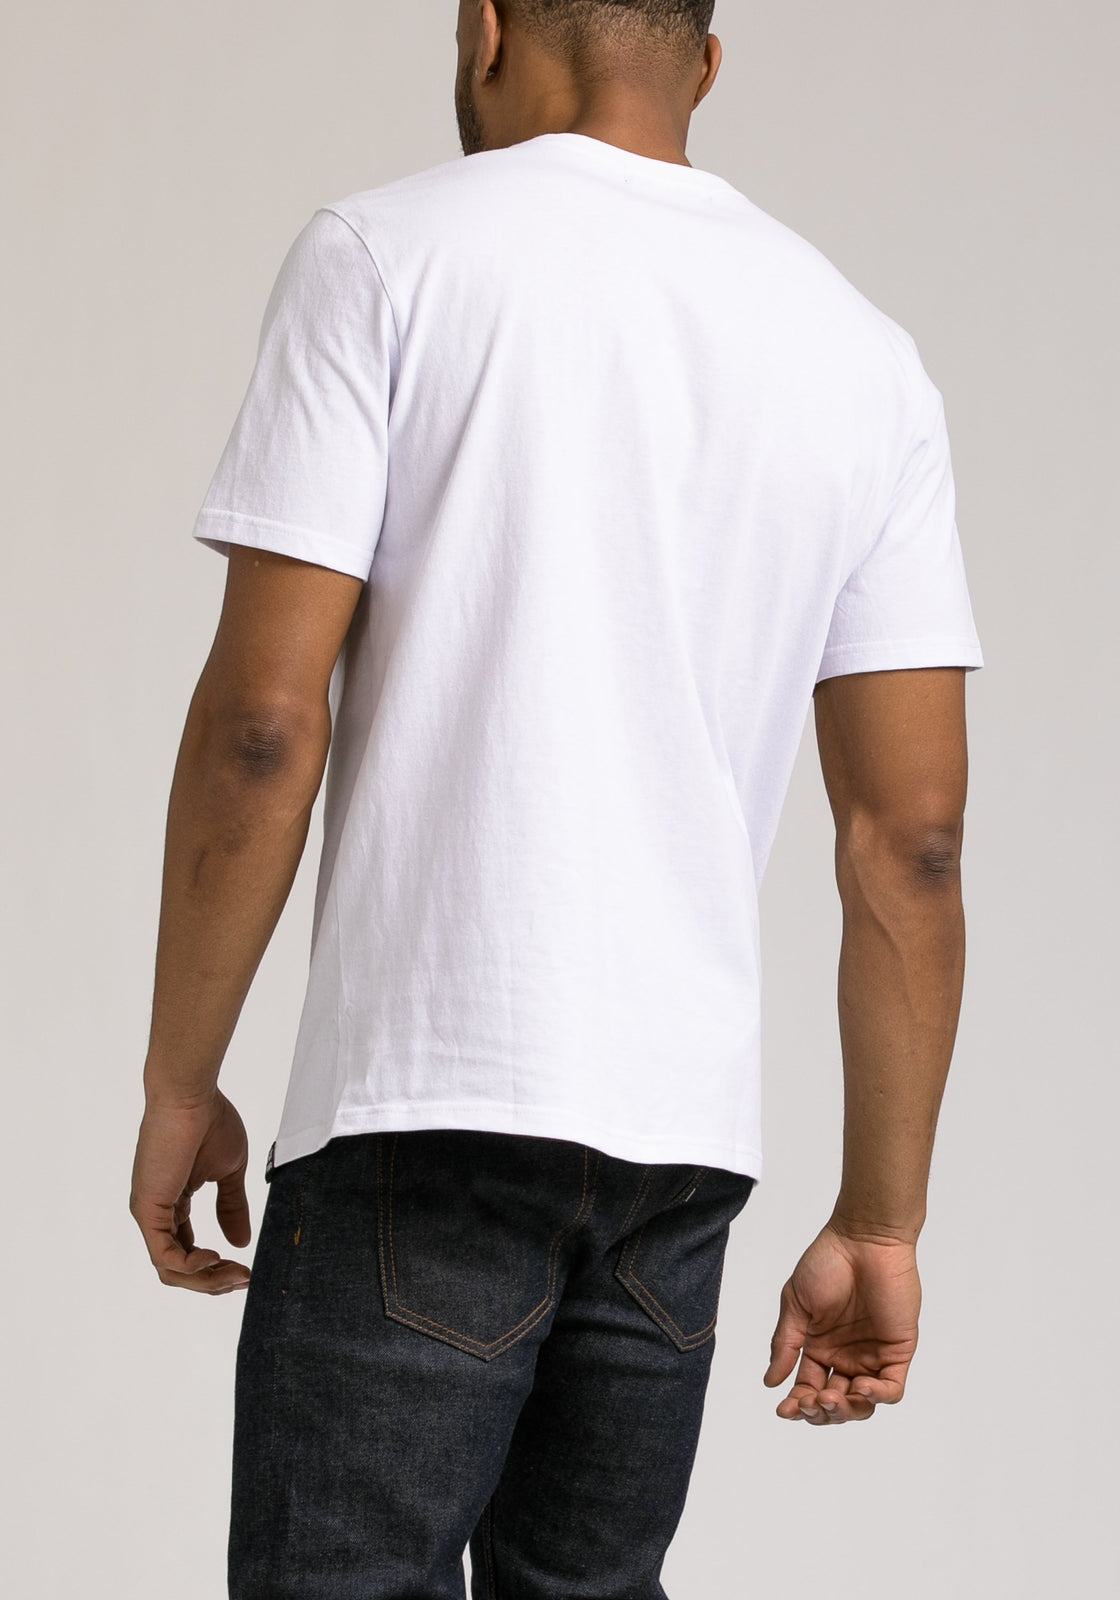 WILD BP SS SHIRT - Color: White